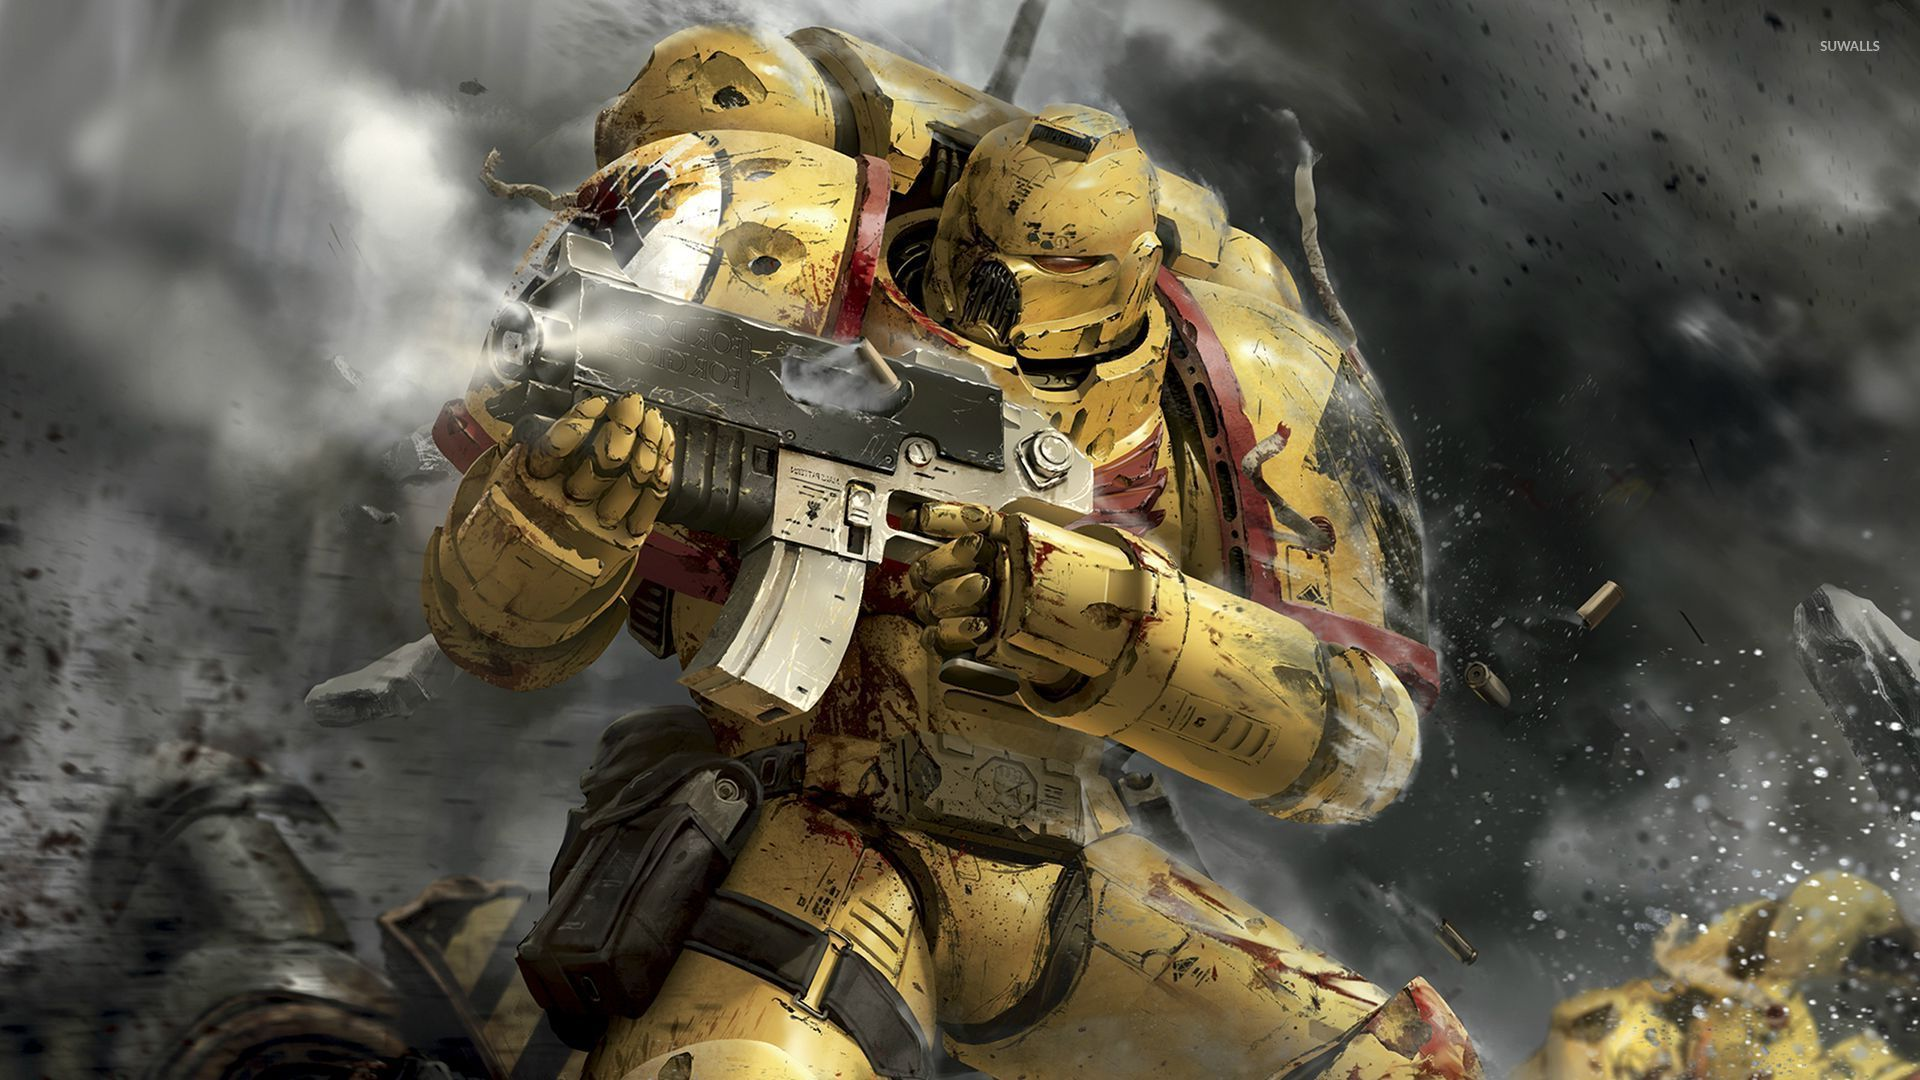 of Terra   Warhammer 40000 wallpaper   Game wallpapers   30375 1920x1080